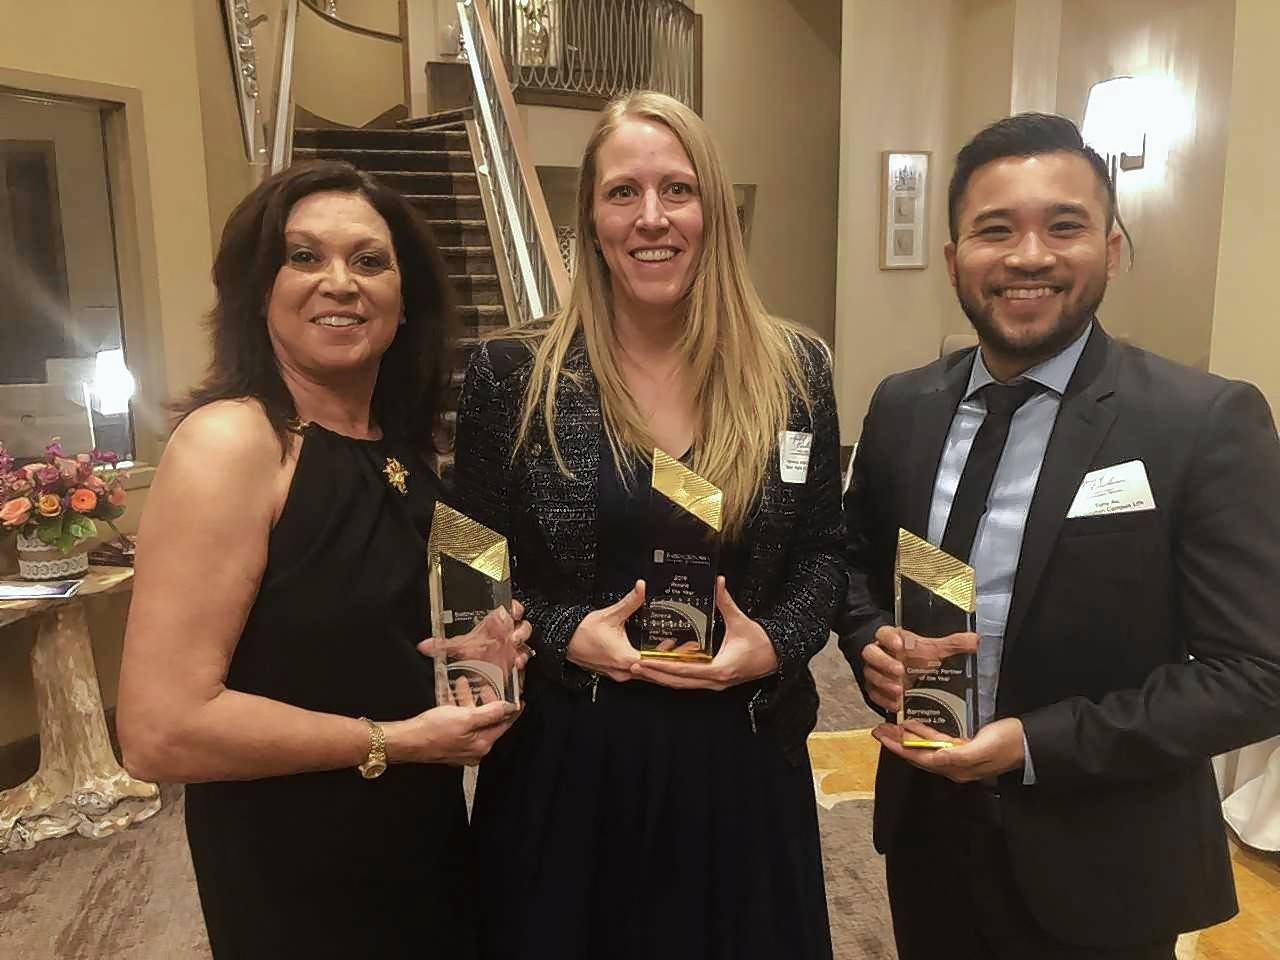 The Barrington Area Chamber of Commerce announced its 2019 Business Award recipients at its annual Dinner & Scholarship Fundraiser on Jan. 17. Pictured, from left, are: Volunteer of the Year Ilona House (Hoffman Estates Animal Hospital/Boisset Collection); Rookie of the Year Serena Kleinstub DC (Deer Park Chiropractic); and Community Partner of the Year Tony Au (Barrington Campus Life Center). Not pictured: New Business of the Year Nick Burbulis (101 W. Liberty).